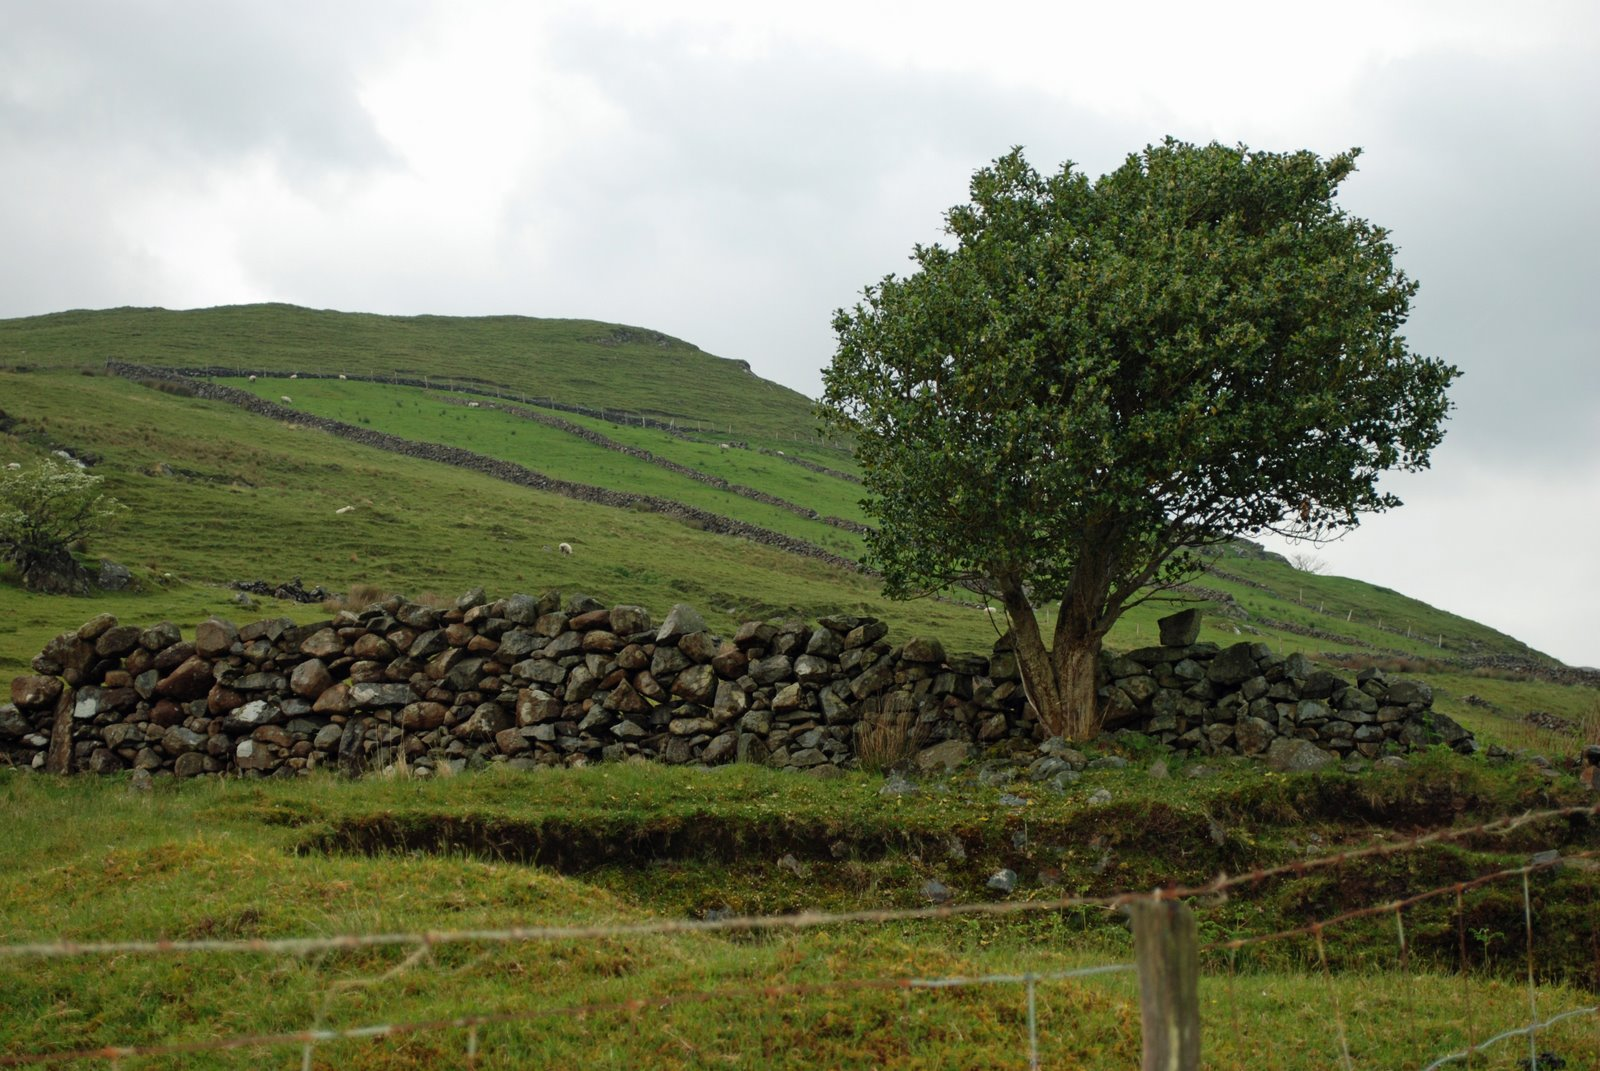 stone walls, Partry Mountains, County Mayo